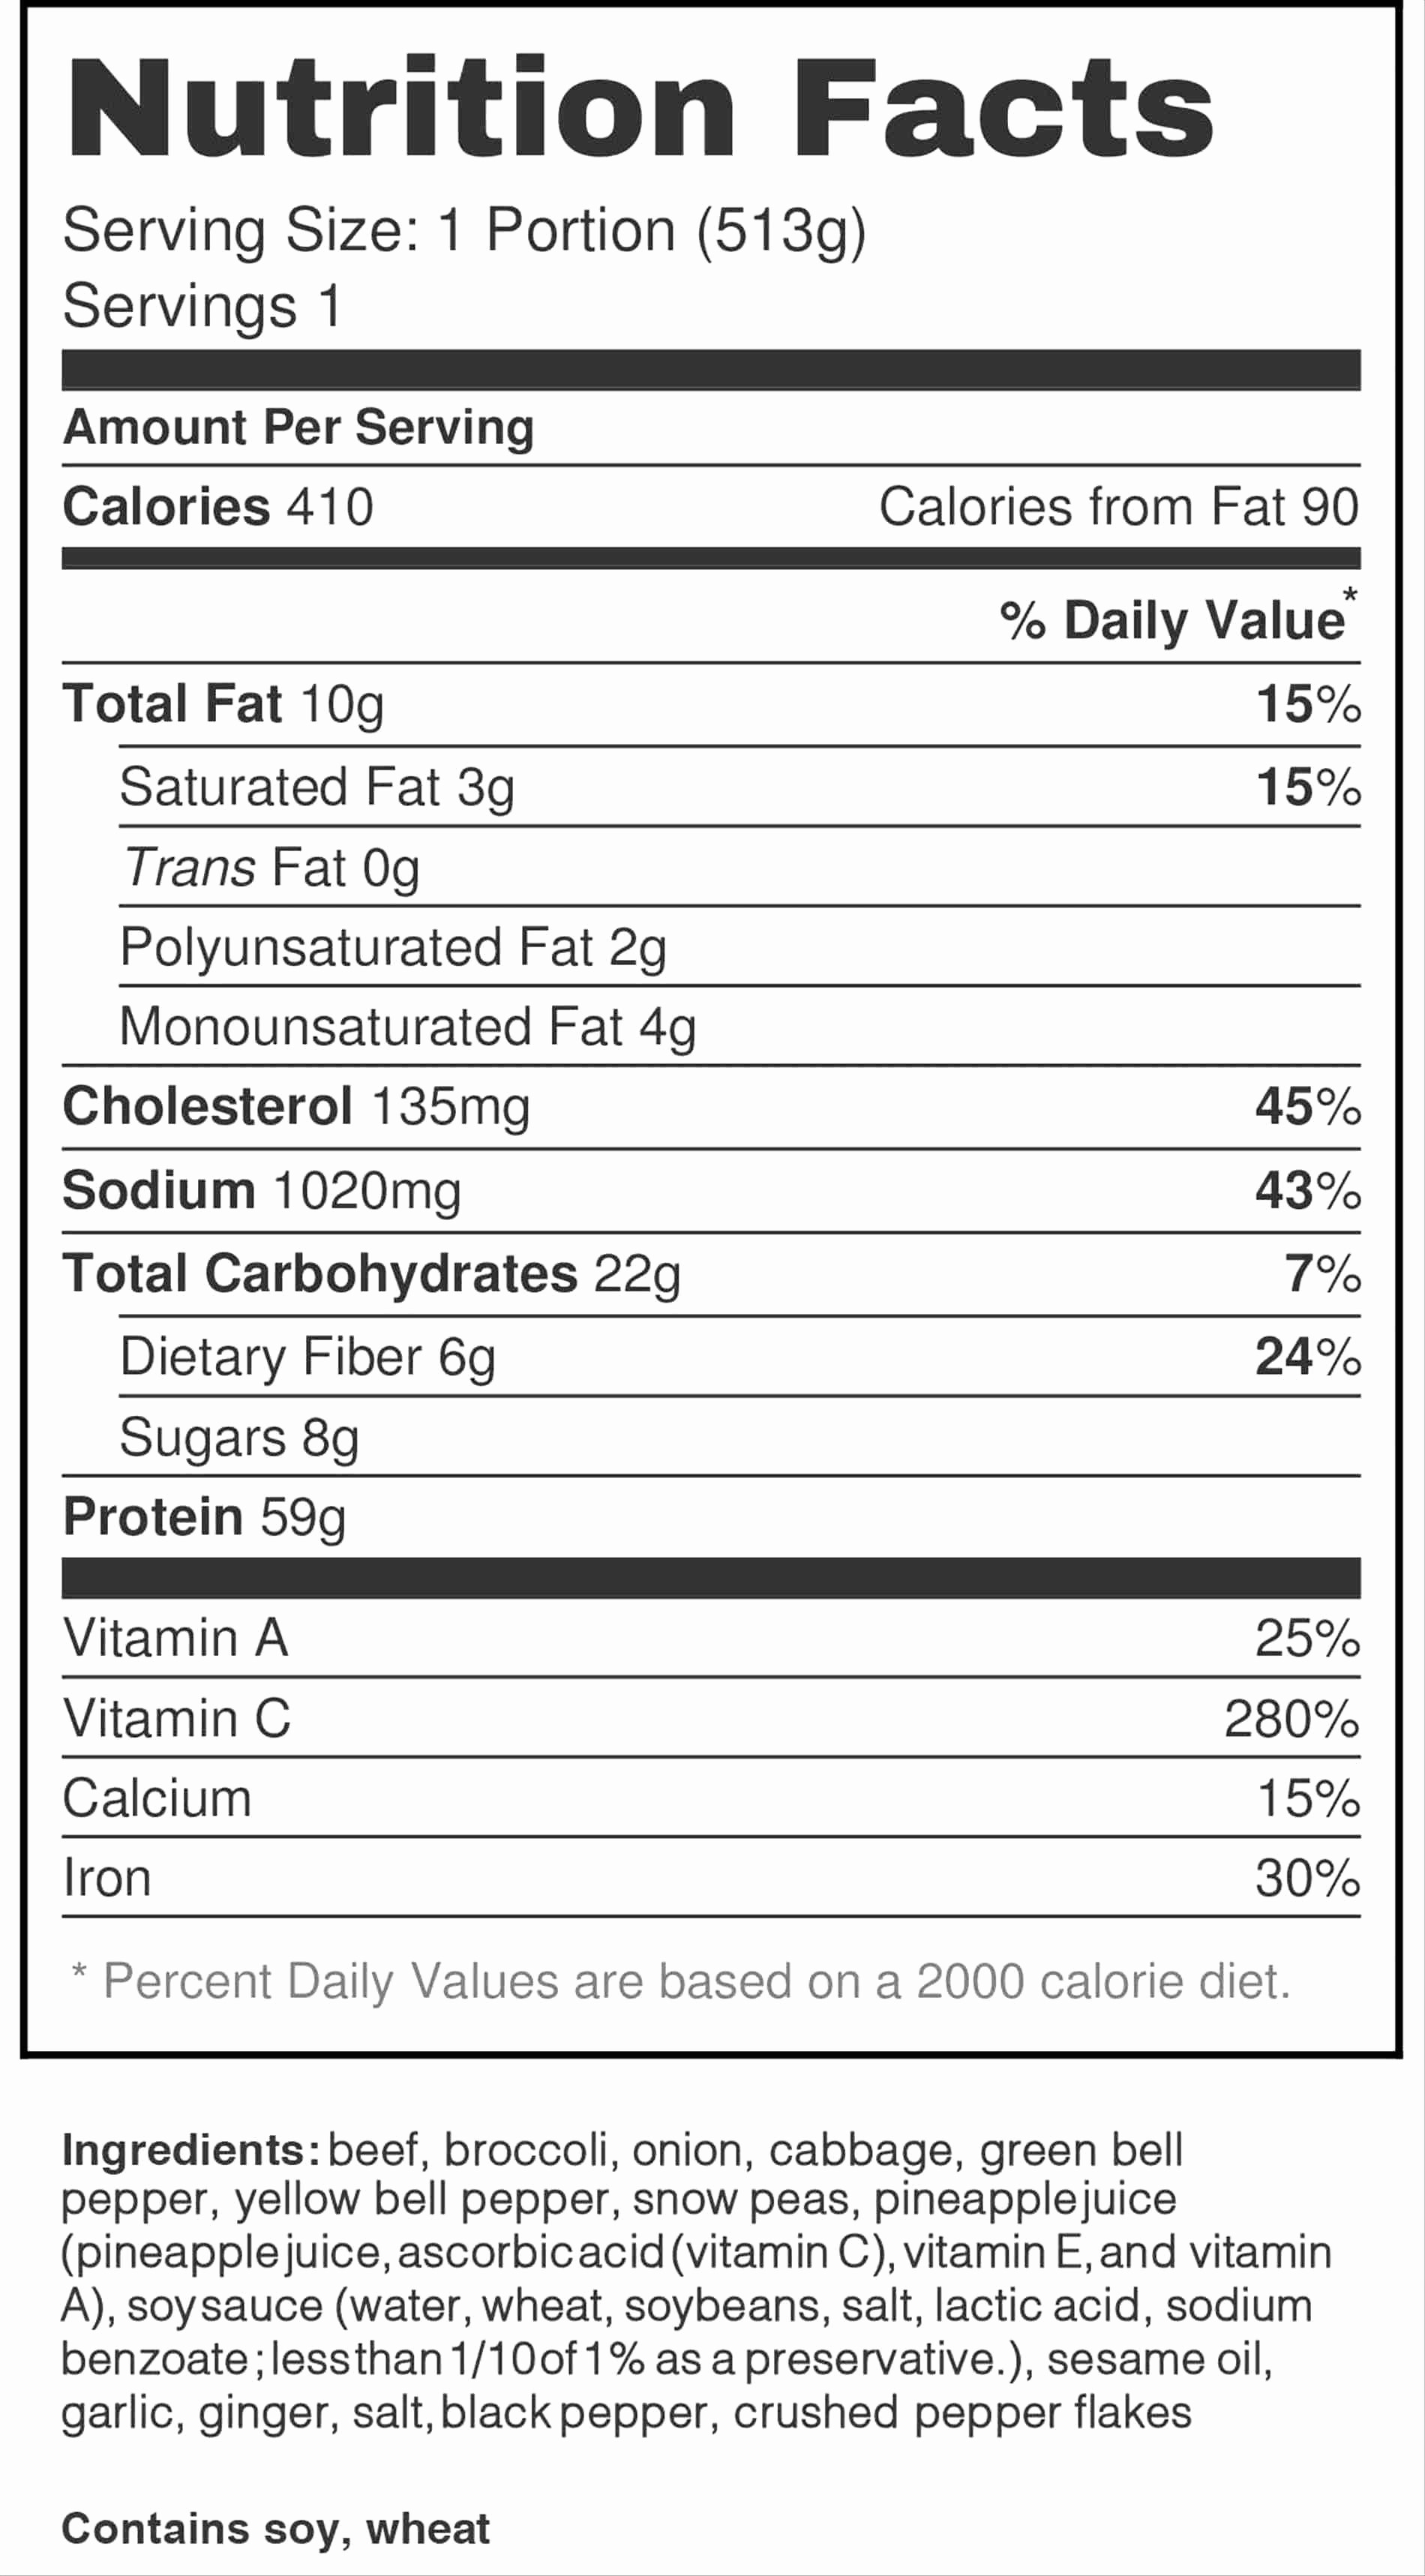 Nutrition Facts Label Template Excel Inspirational Nutrition Label Template Excel Hola Klonec